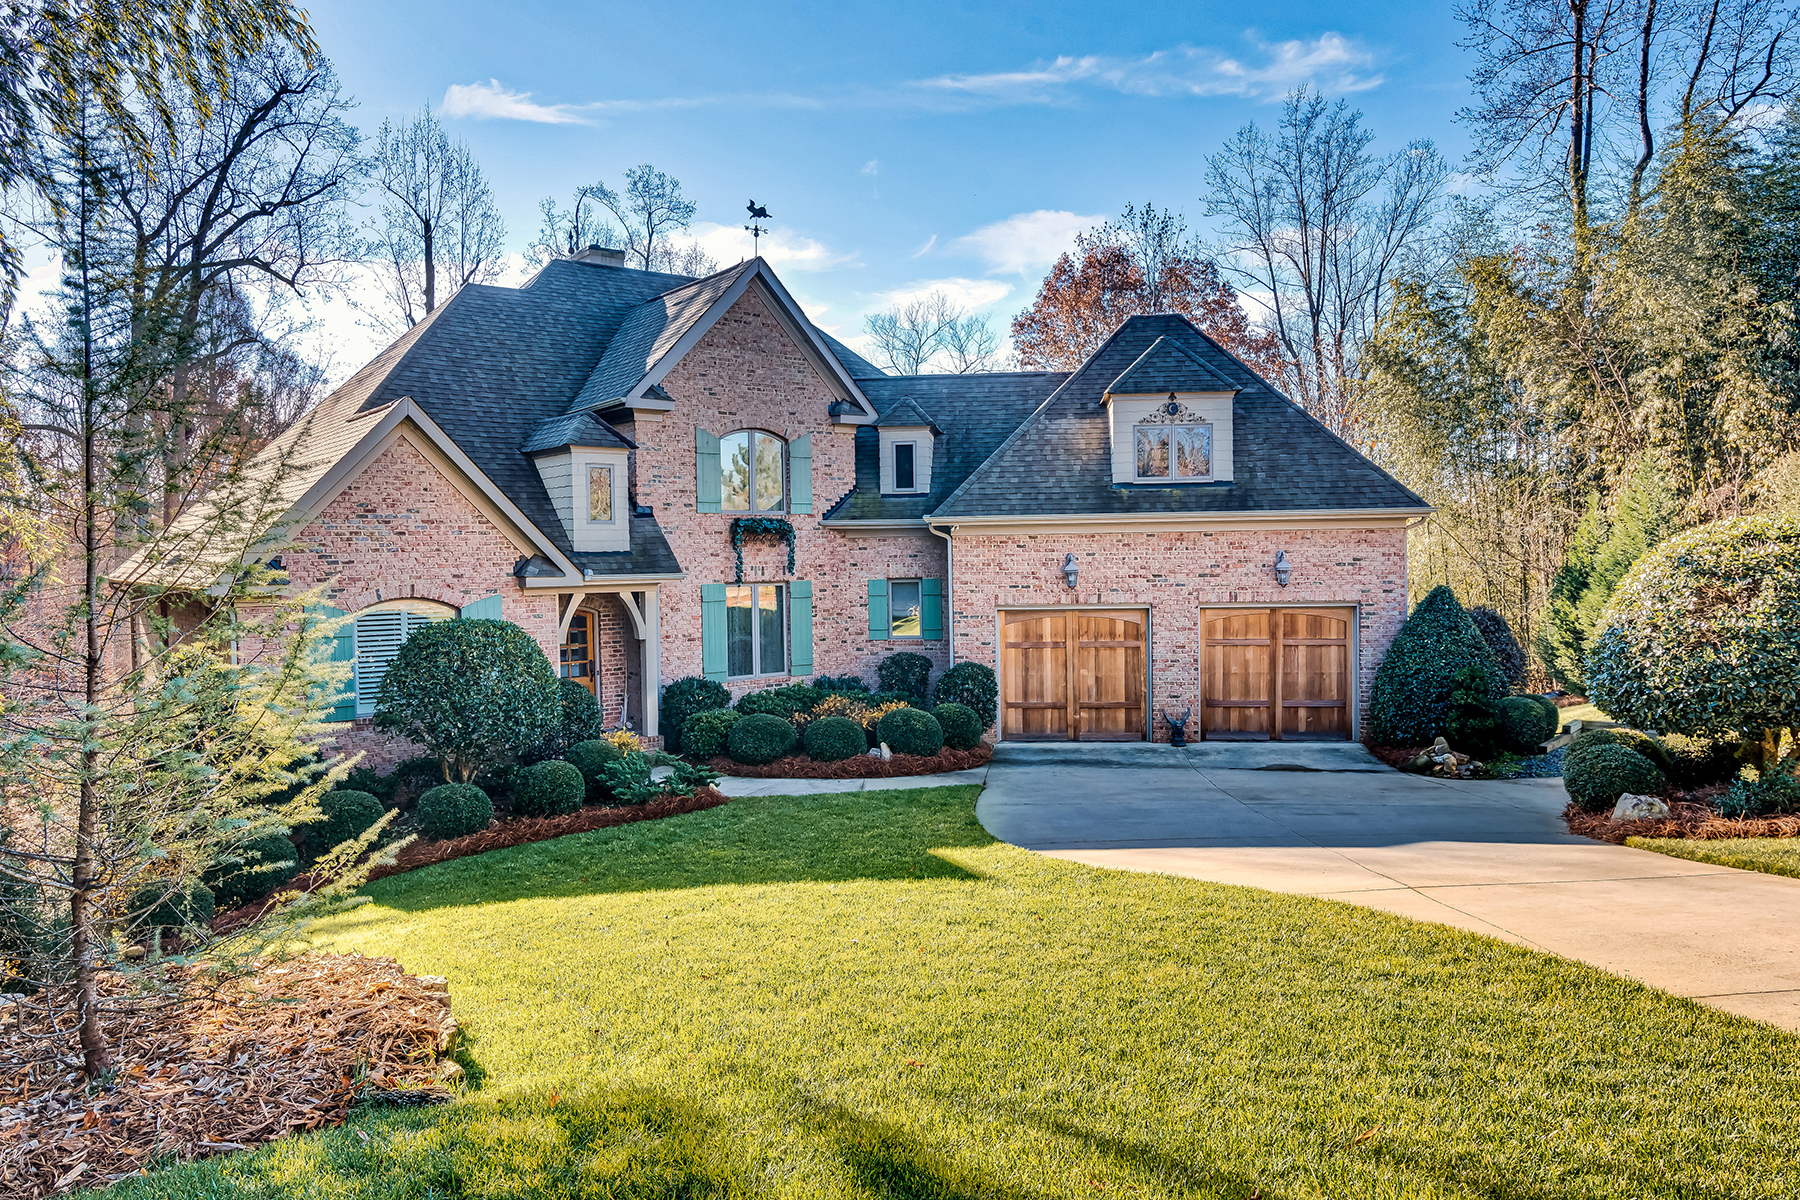 Single Family Home for Sale at THE HIGHLANDS 121 Highland View Dr, Statesville, North Carolina 28677 United States